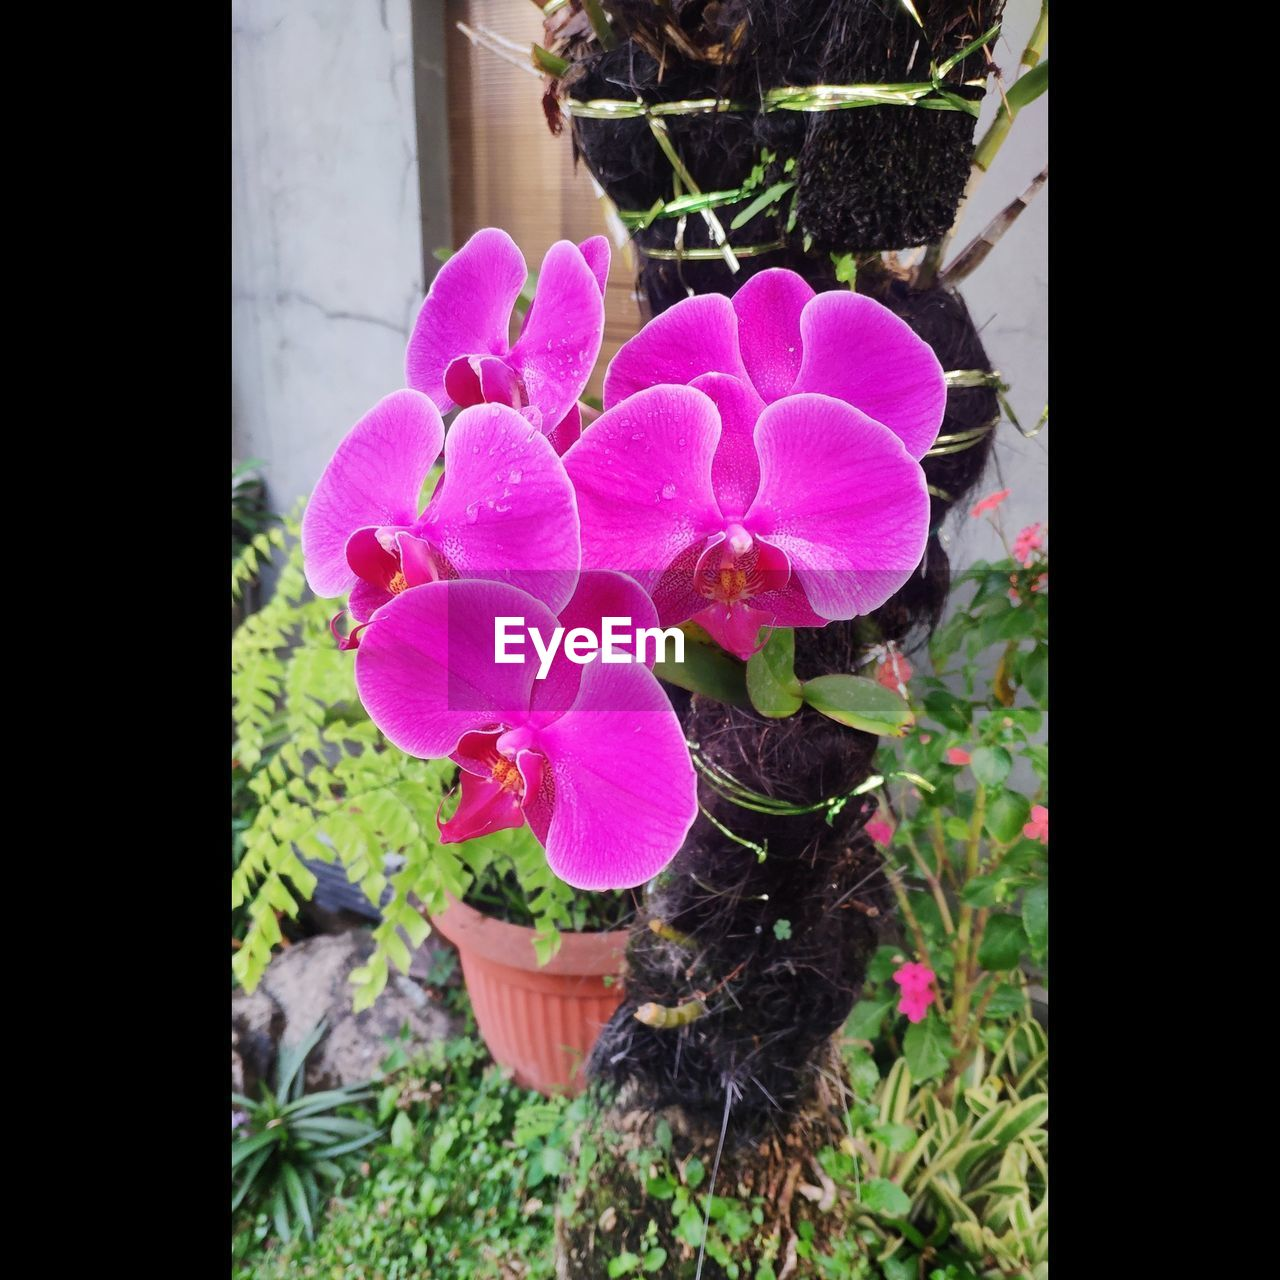 plant, flower, flowering plant, vulnerability, fragility, pink color, beauty in nature, growth, freshness, nature, petal, no people, flower head, inflorescence, close-up, mammal, animal, day, potted plant, domestic animals, outdoors, flower pot, purple